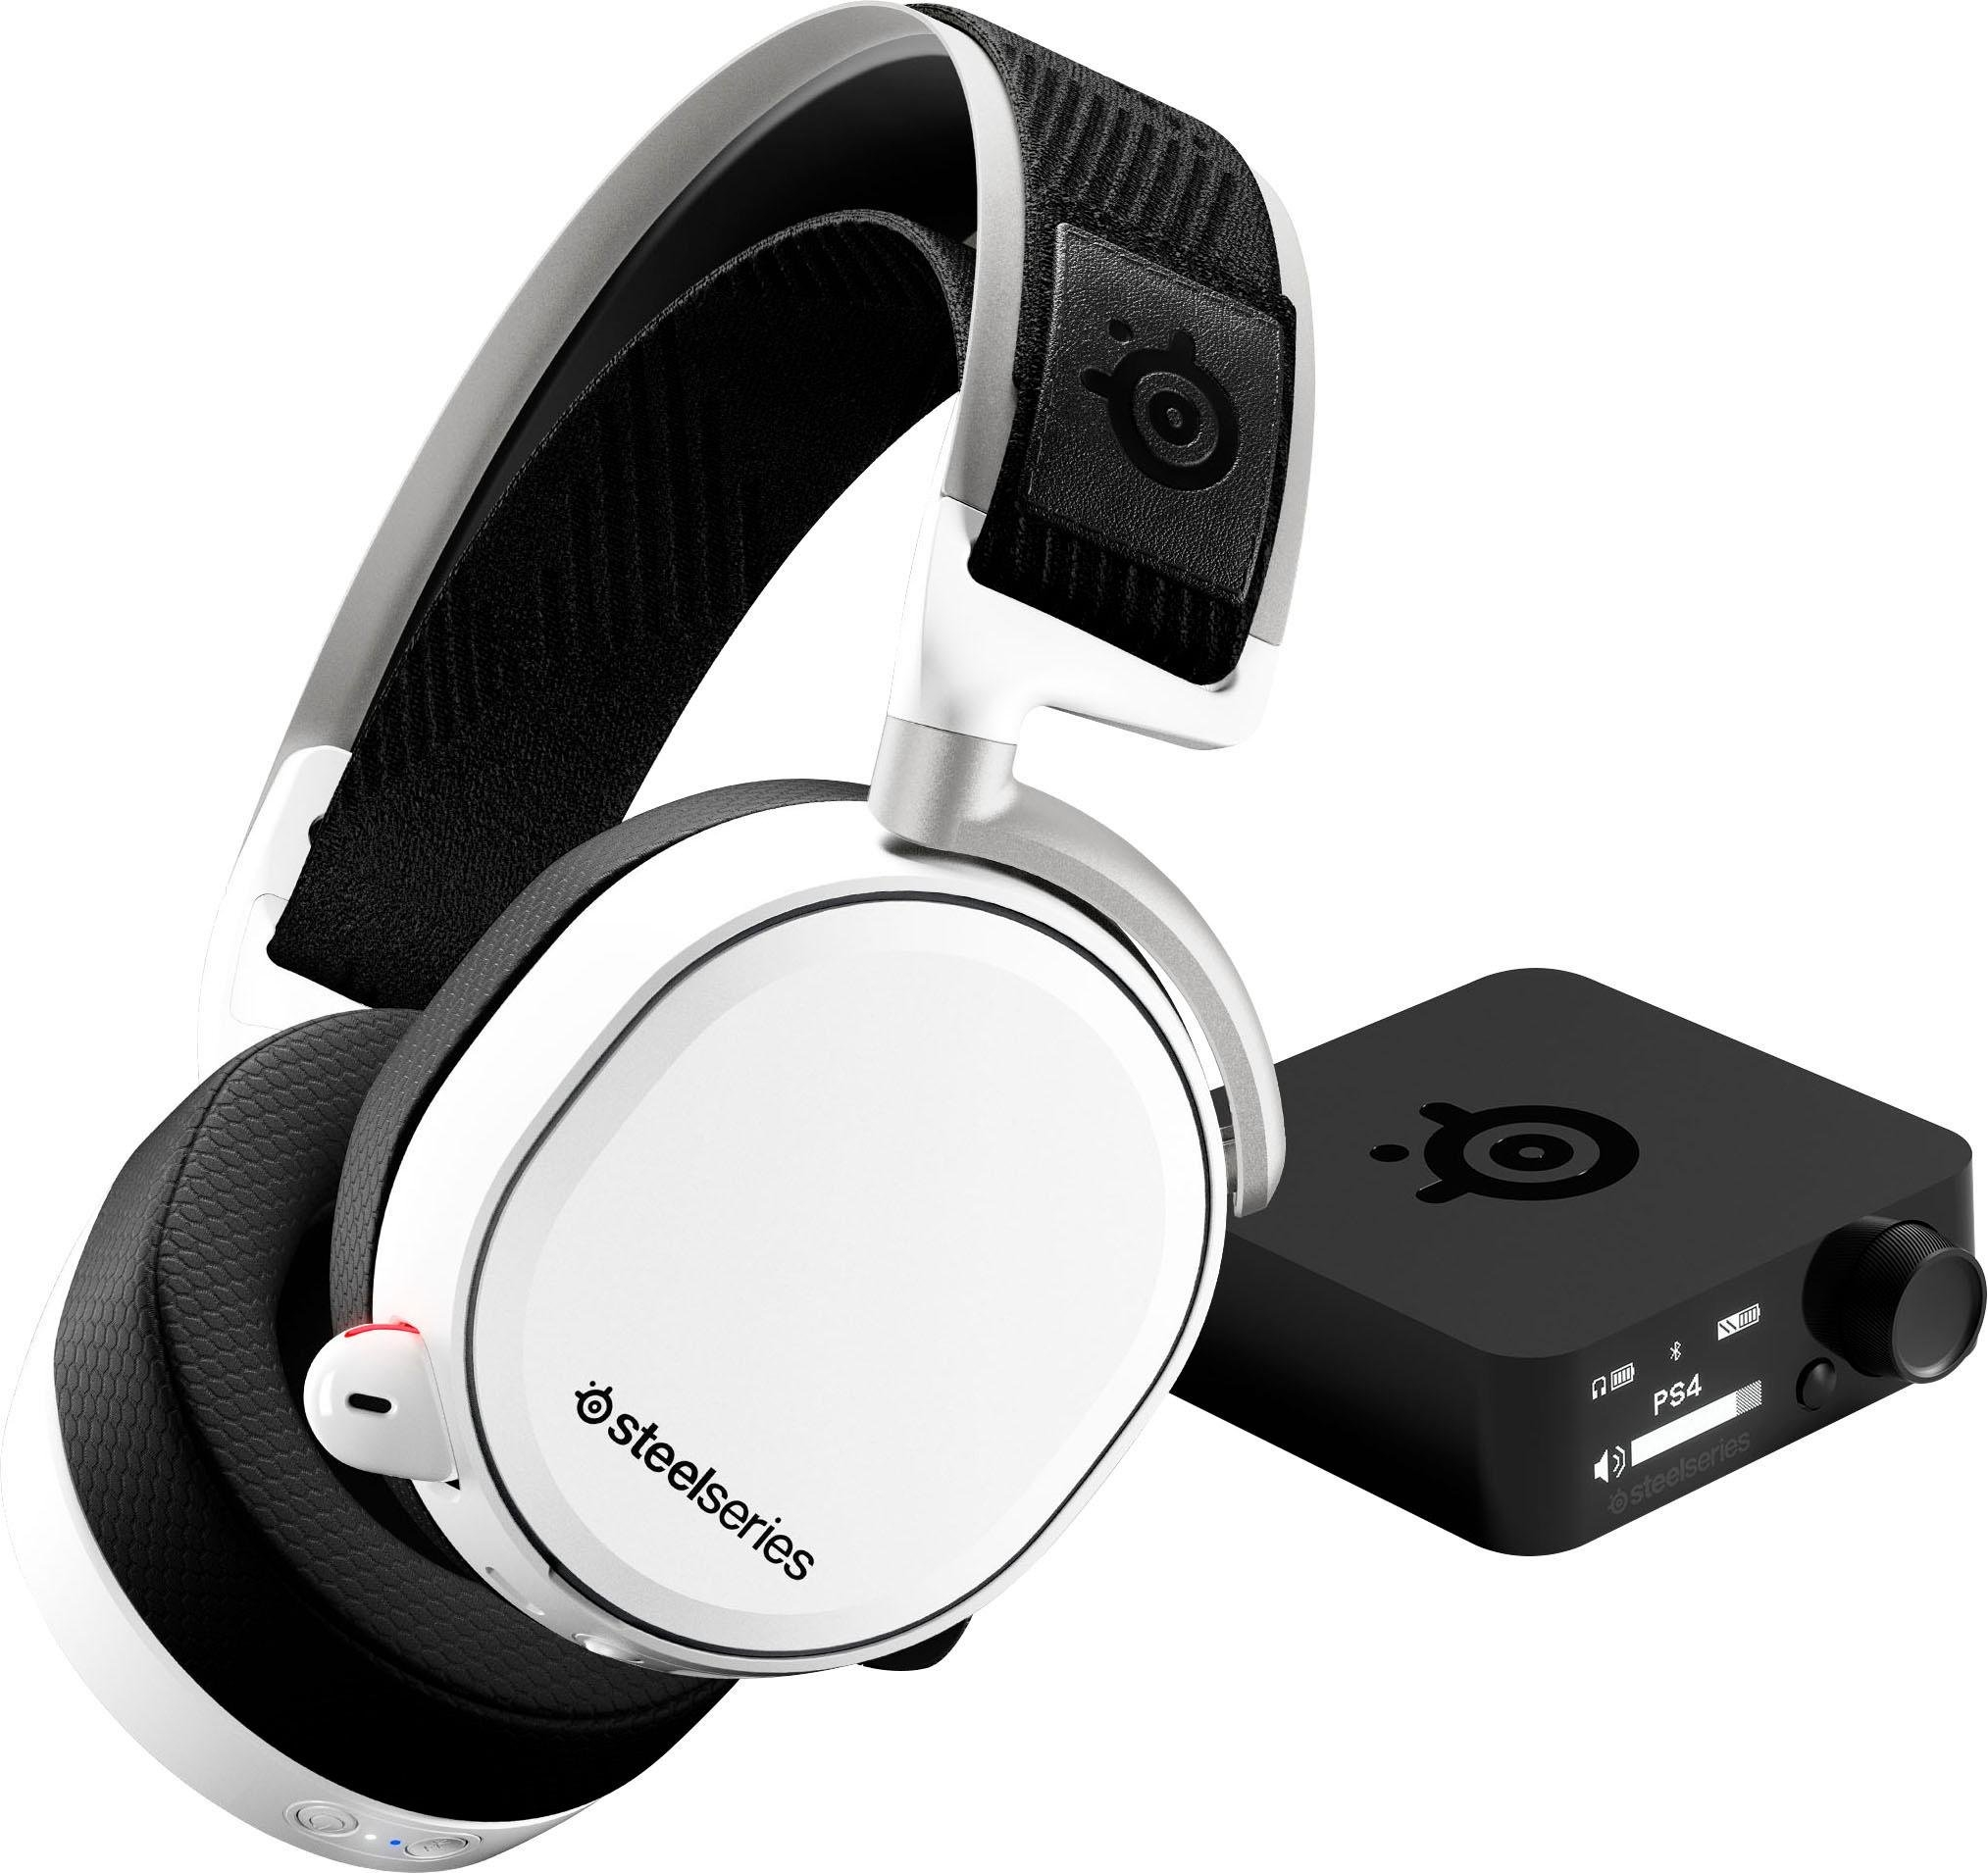 Steelseries »Arctis Pro Wireless White« gaming-headset (bluetooth, Hi-Res, Noise-Cancelling) bij OTTO online kopen